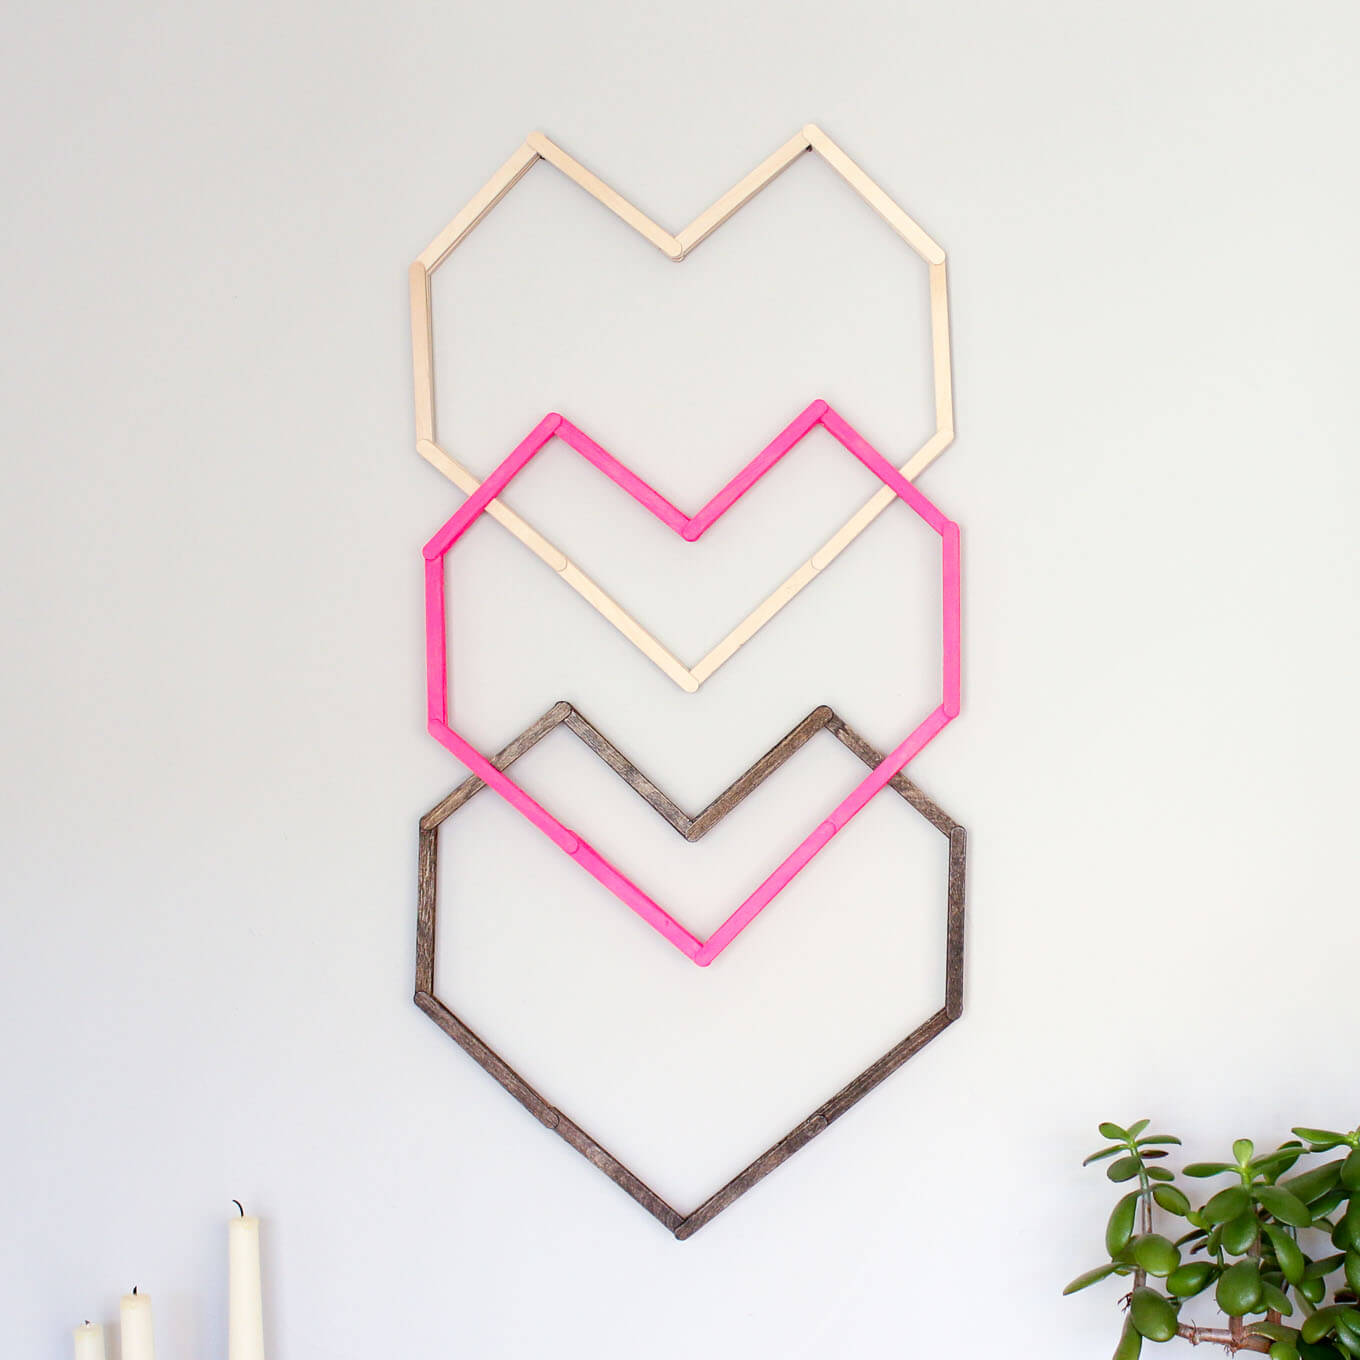 Geometric Heart DIY Wall Art - With Popsicle Sticks!